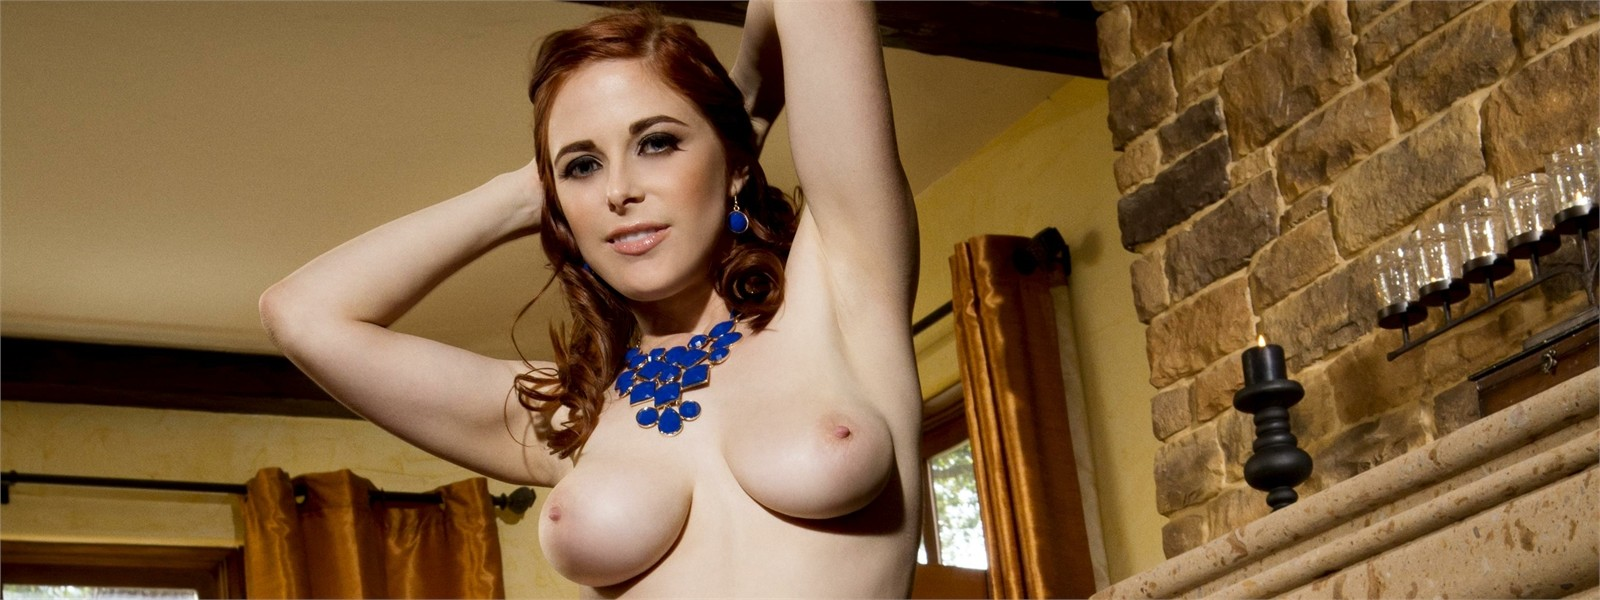 Watch scenes from Penny Pax.